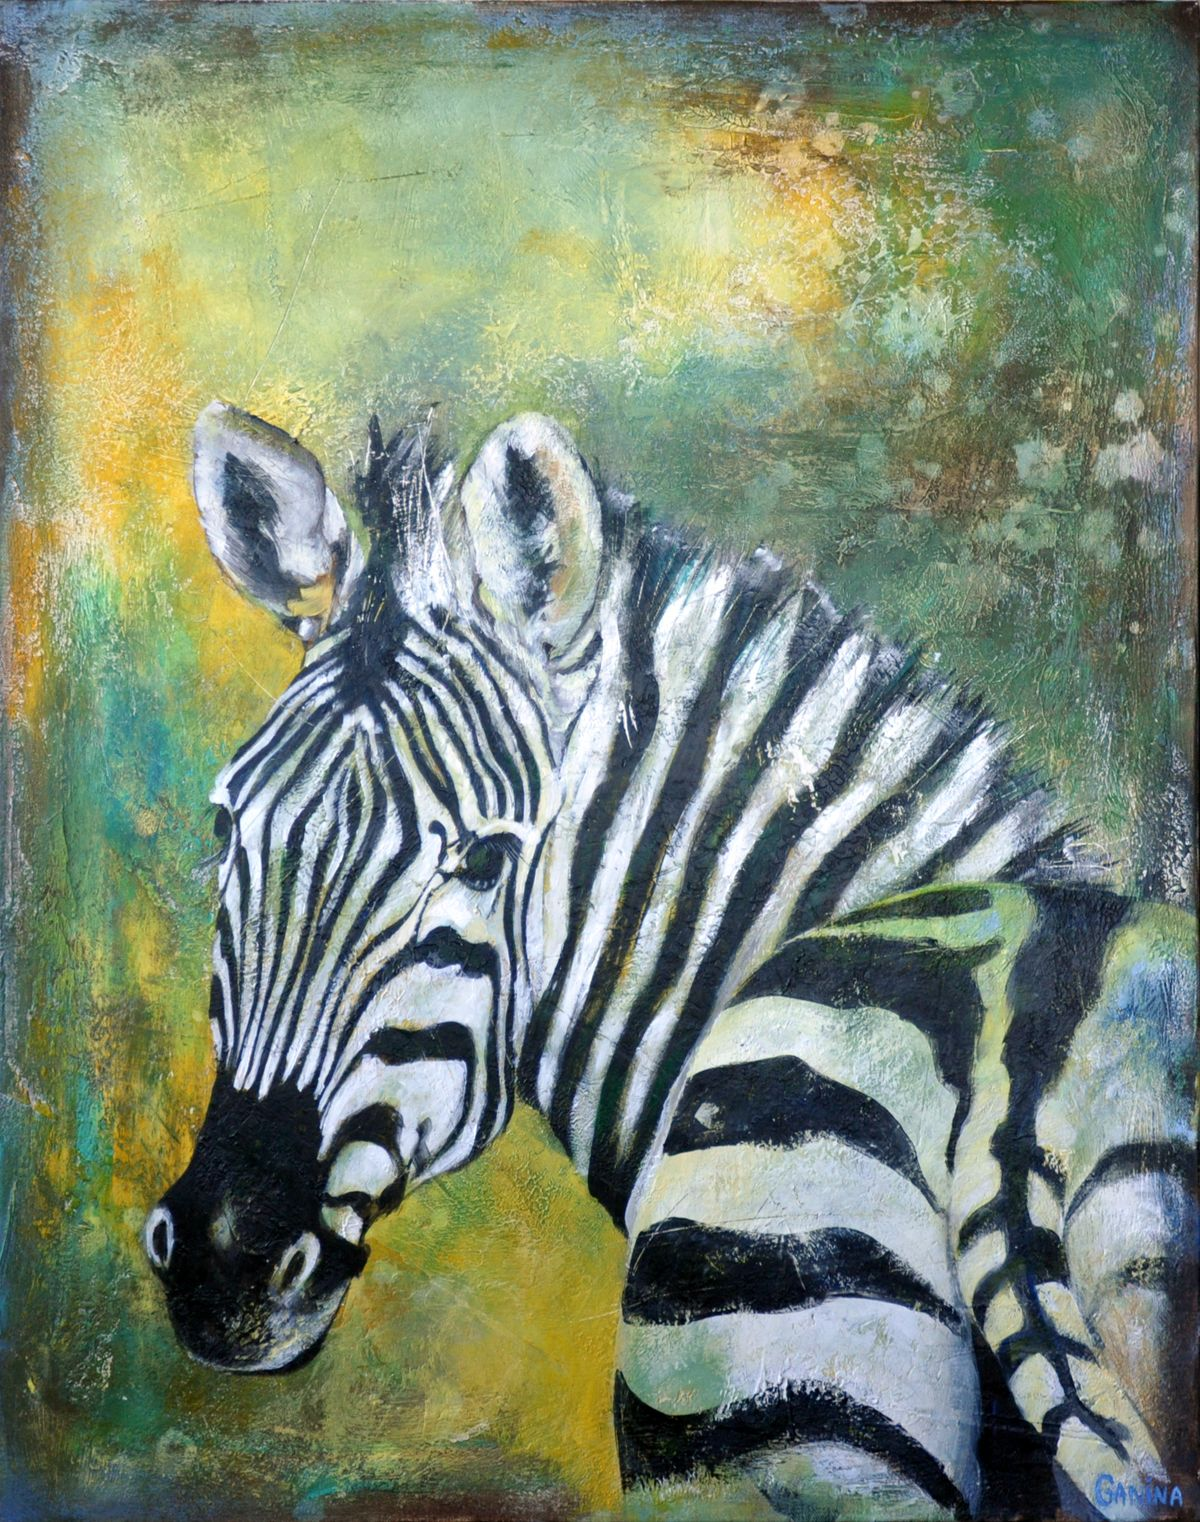 Anna_Ganina_Stripes_Austin_Art_Local_Art_gifts.jpg